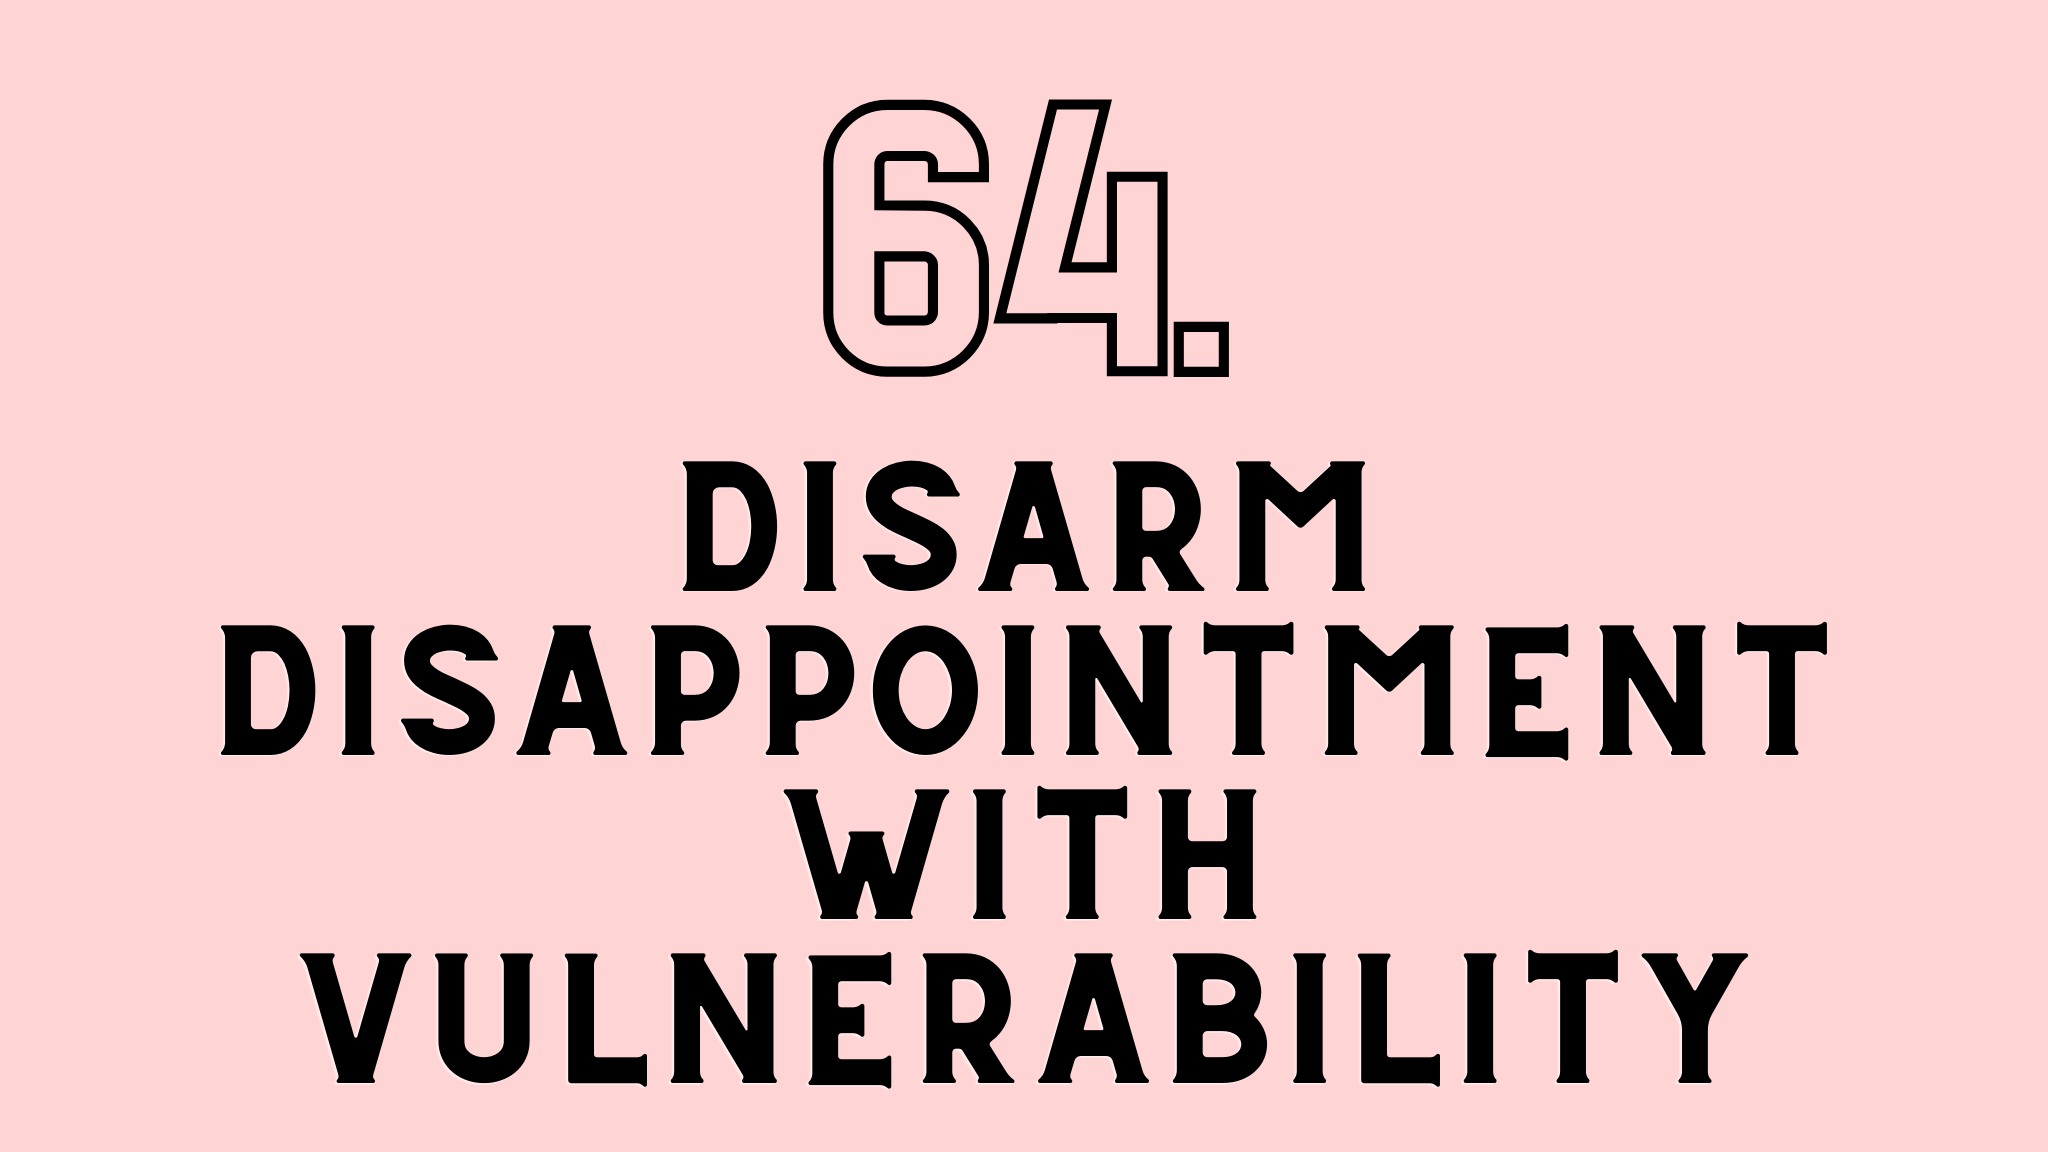 disarm disappointment